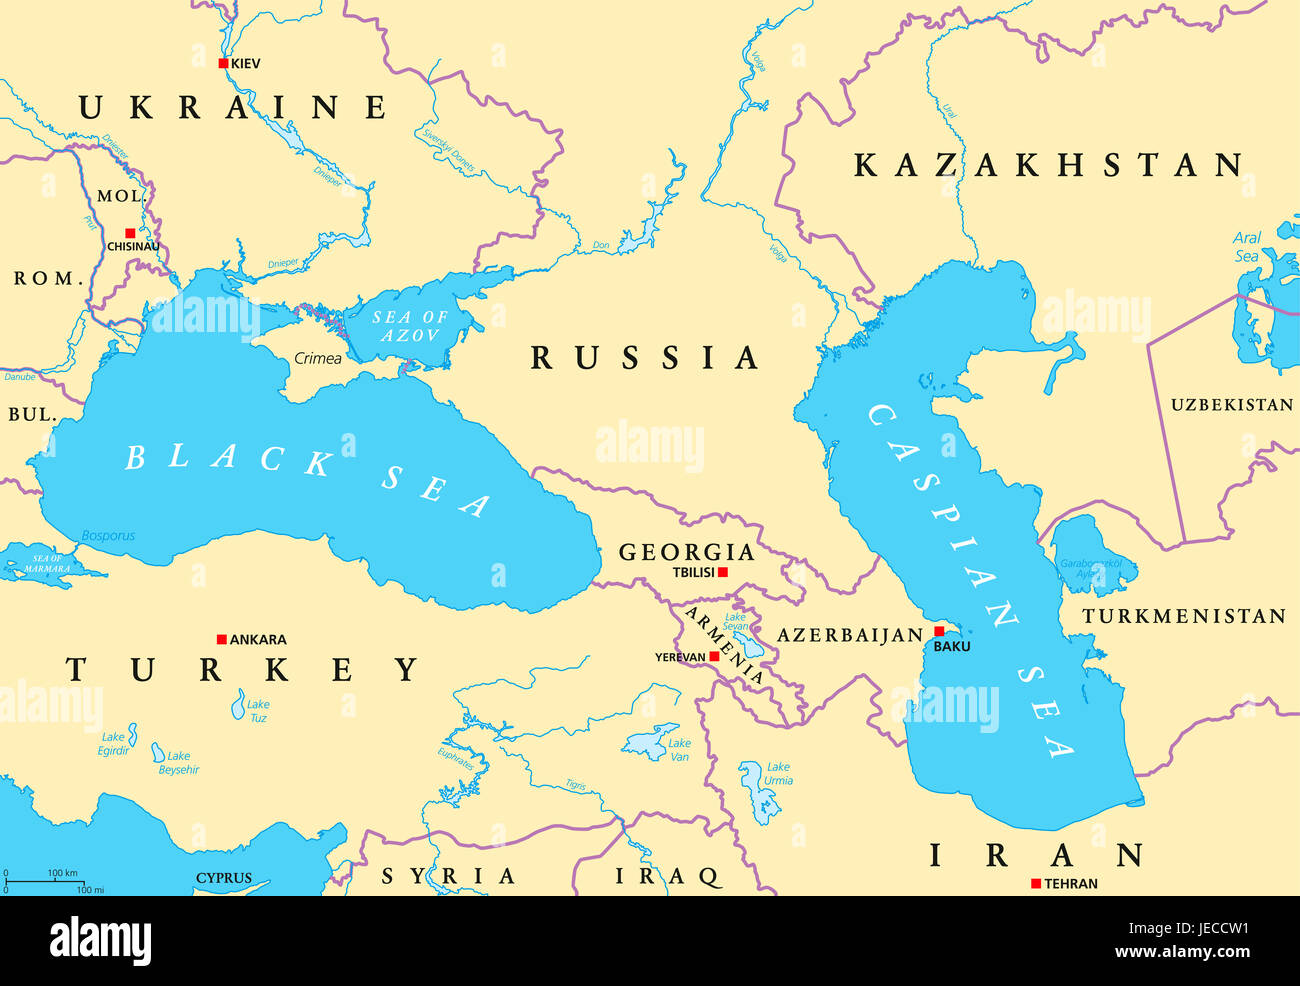 Black Sea and Caspian Sea region political map with capitals ...